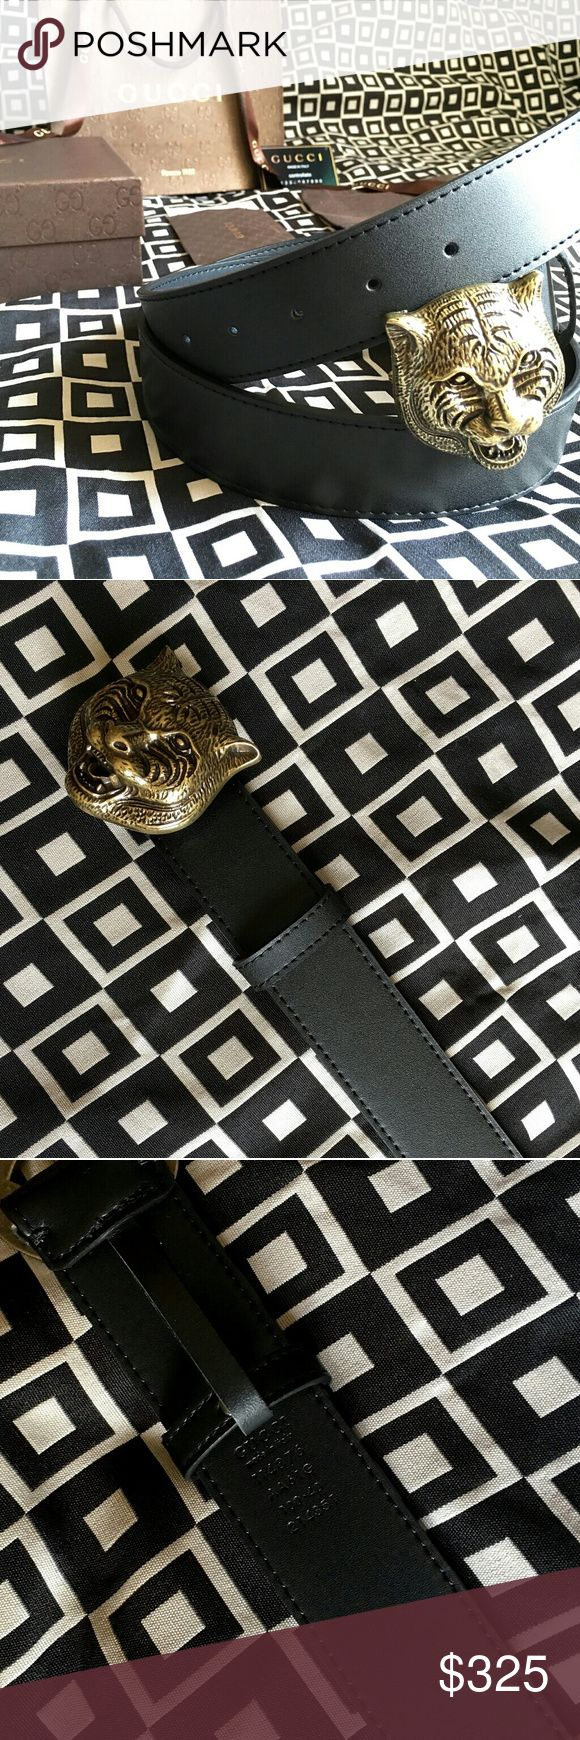 """Gucci Feline Belt!!! Gucci Feline Belt W/ Antique Brass Hardware!!!  Brand New!!!  Size Available - 32"""", 34"""", 36"""", 38"""", 40"""", 42"""", 44""""!!!  Includes Gucci Belt, Gift Box, Dust Bag, Ribbon, Etc!!!  Great Gift Idea!!!  Last Available!!!  Check My Listings For Other Great Items!!!             Ignore: Gucci gg monogram casual dress belts men's women's guccissma leather monogram web tiger bee embossed panther wool cable knit blooms supreme print angry cat ufo dragon studded snake double g Gucci…"""